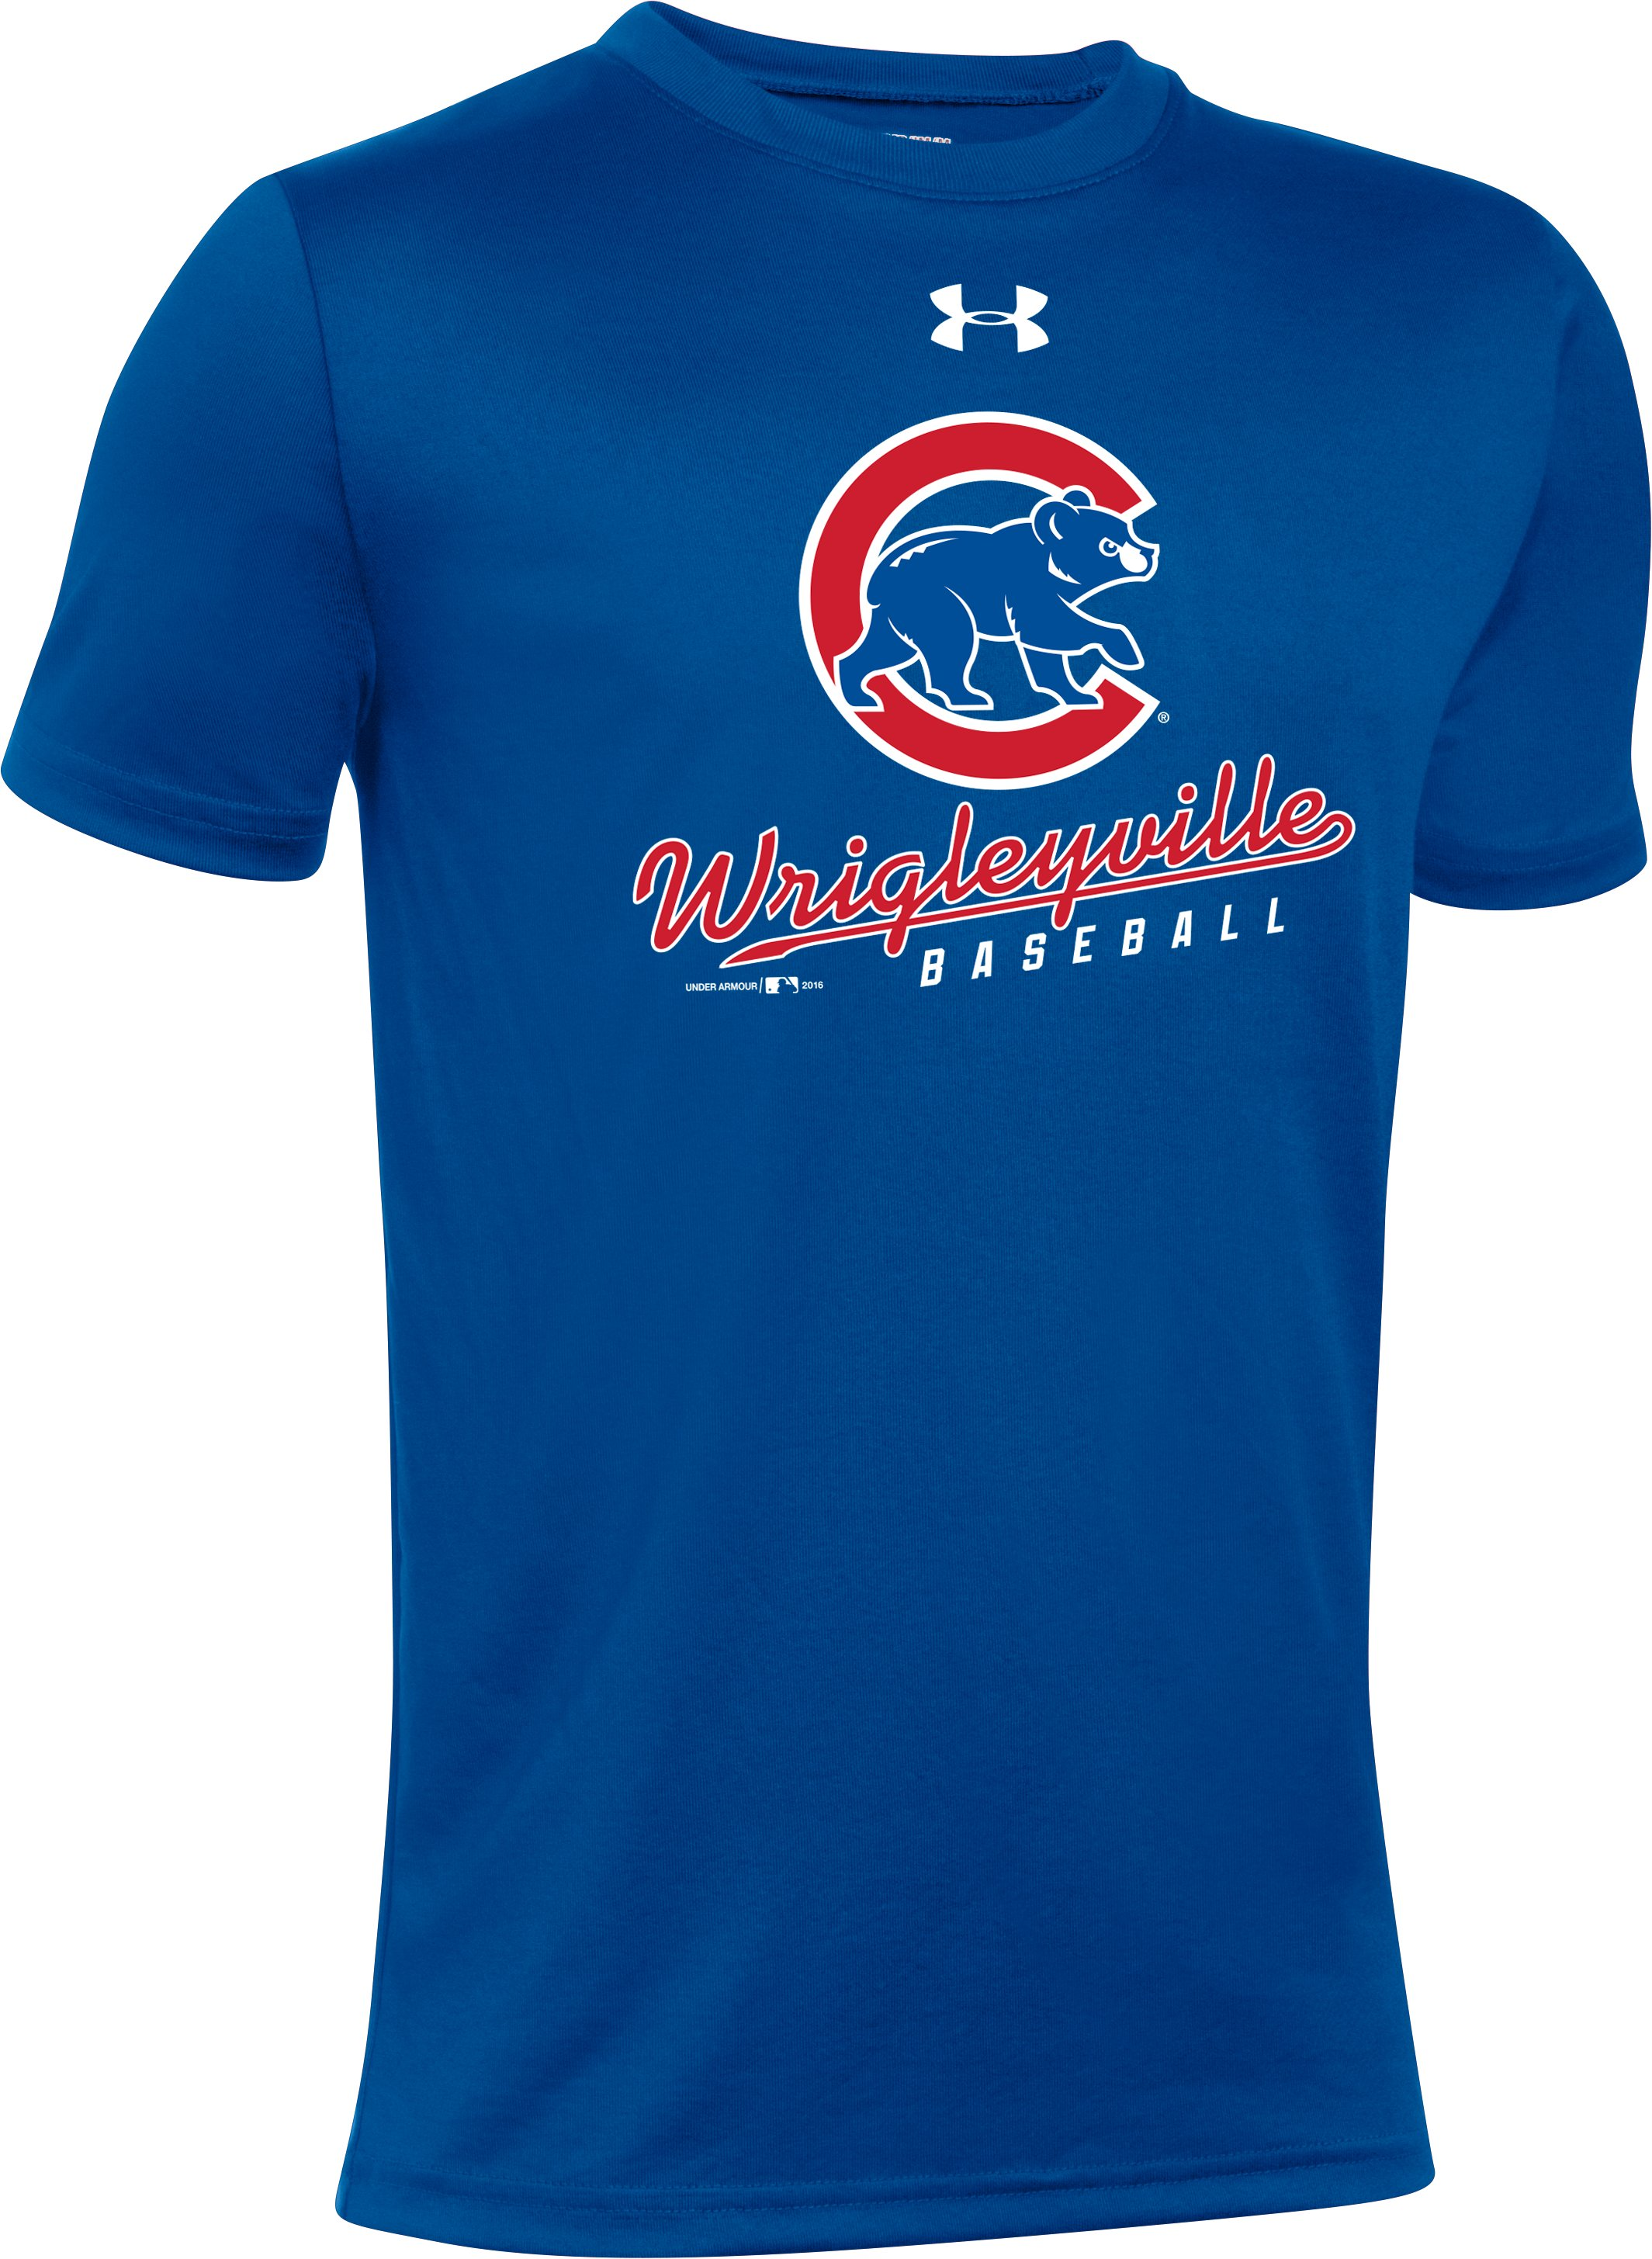 Kids' Chicago Cubs Wrigleyville T-Shirt, Royal